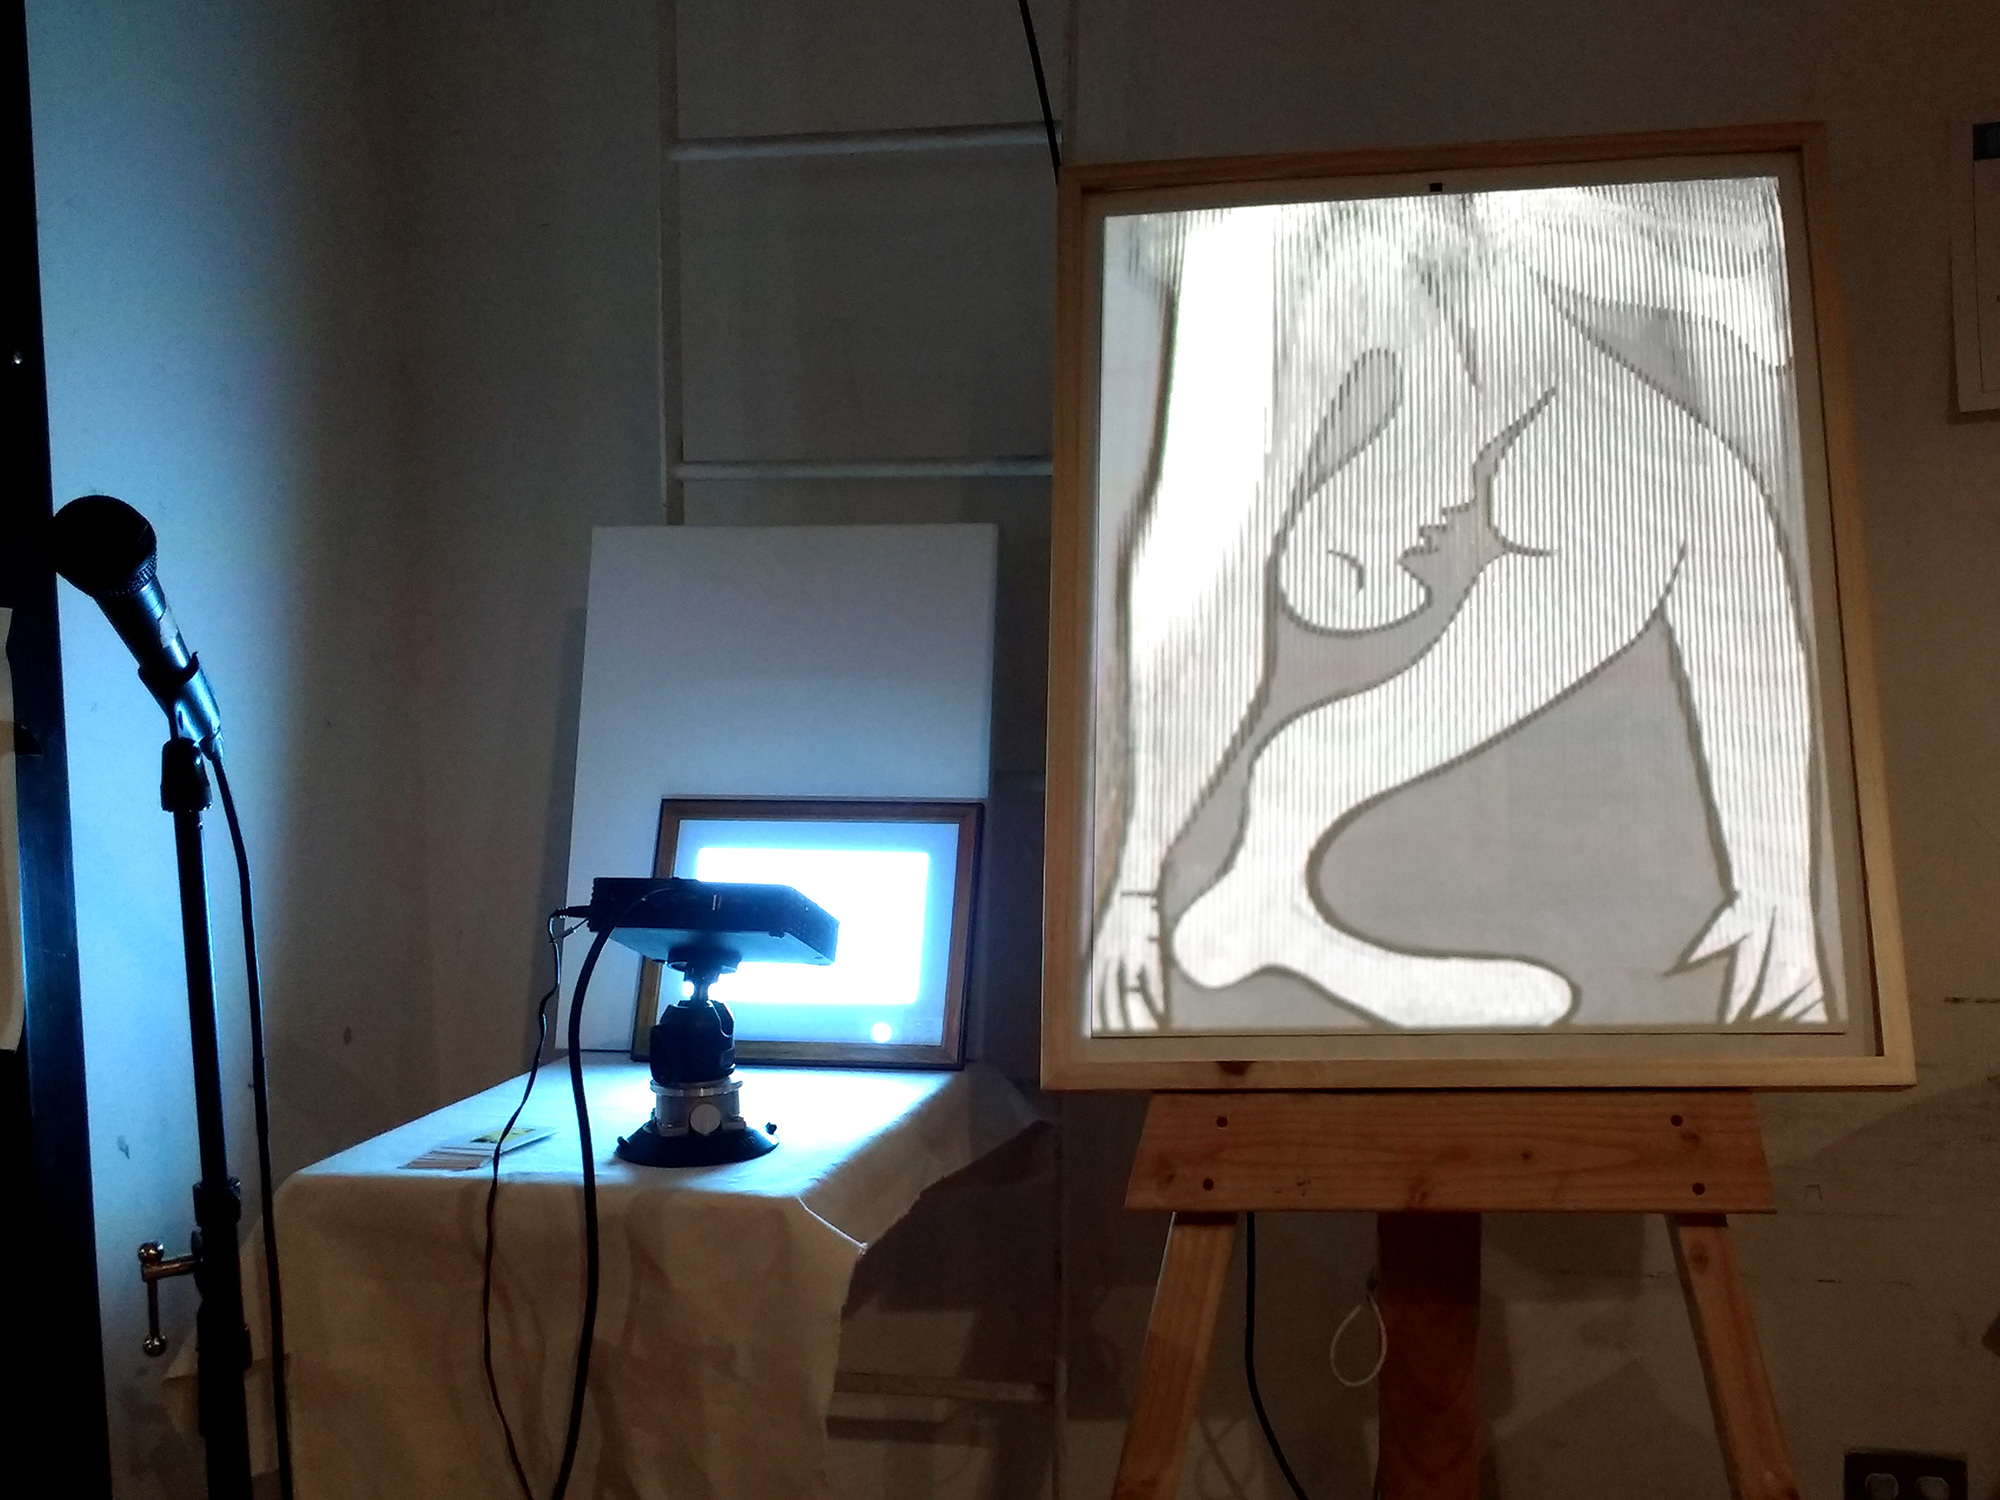 Example of a digital recreation of a Picasso piece that can be warped based on a person's physical movements and voice